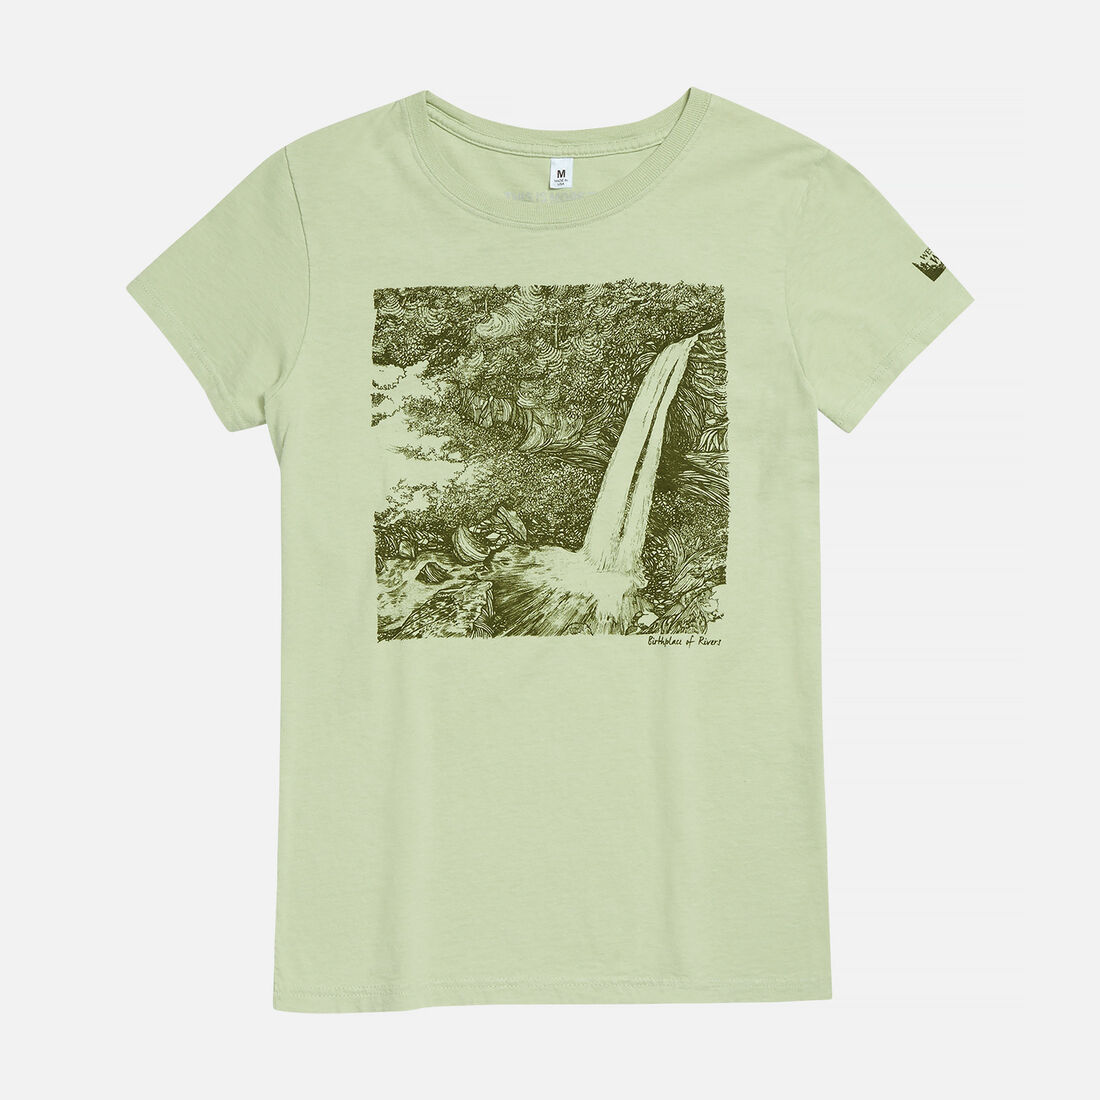 Women's Birthplace of Rivers, WV T-Shirt in Green Pea - large view.